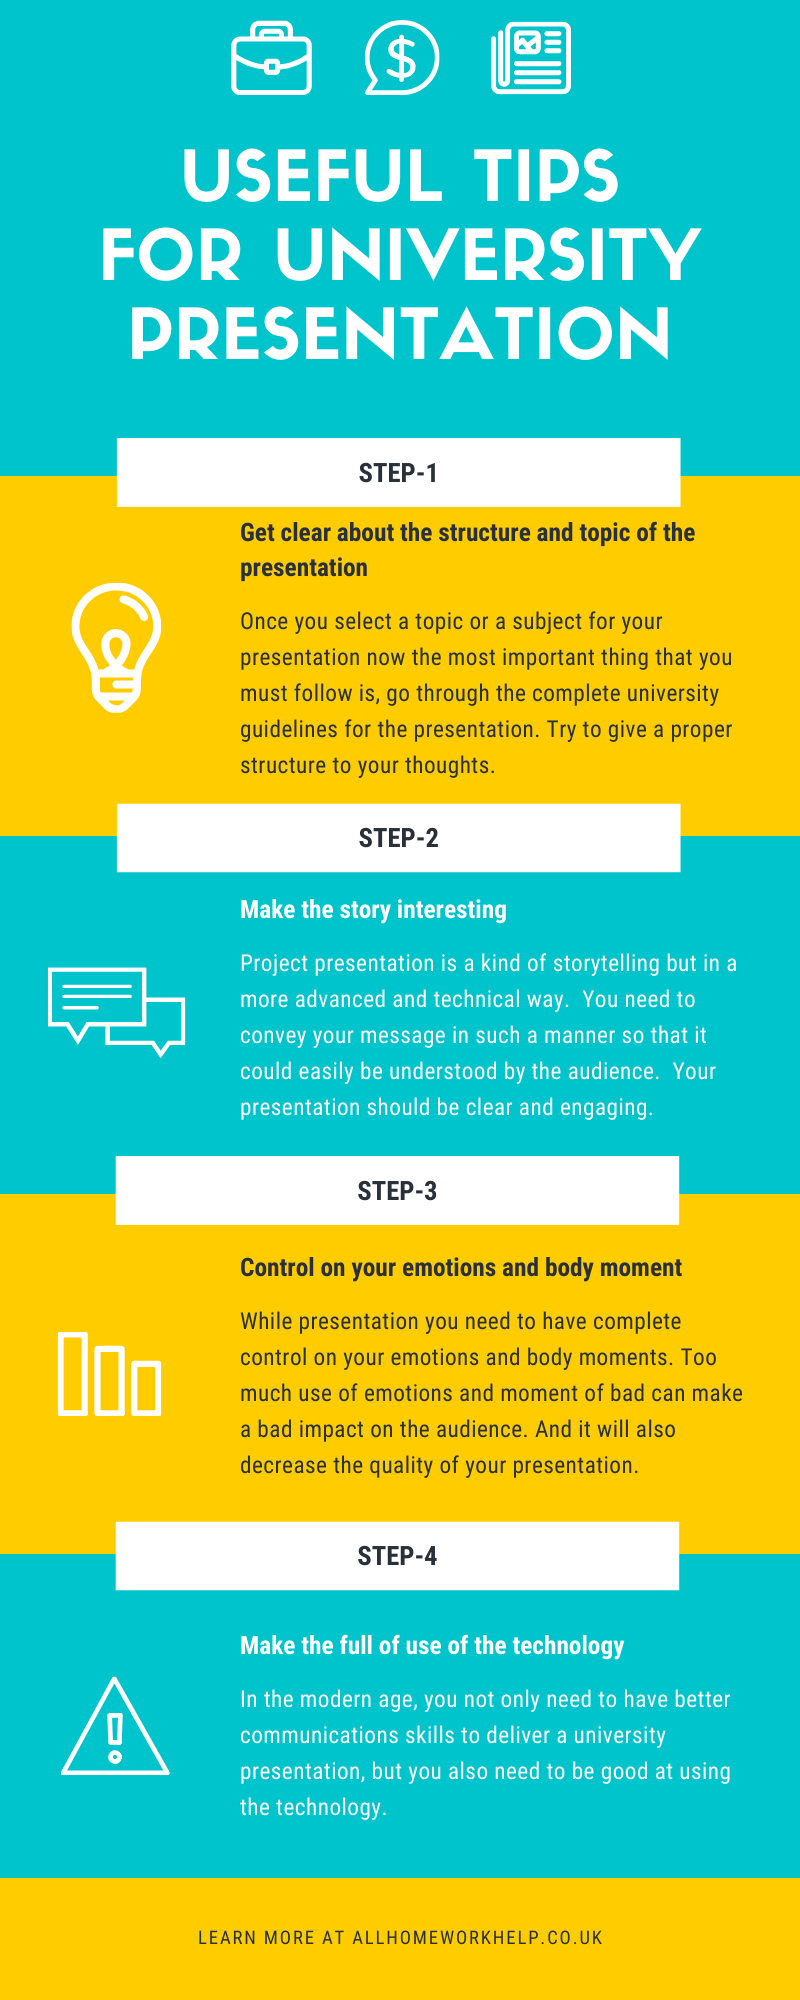 Some-Useful-Tips-For-University Presentation